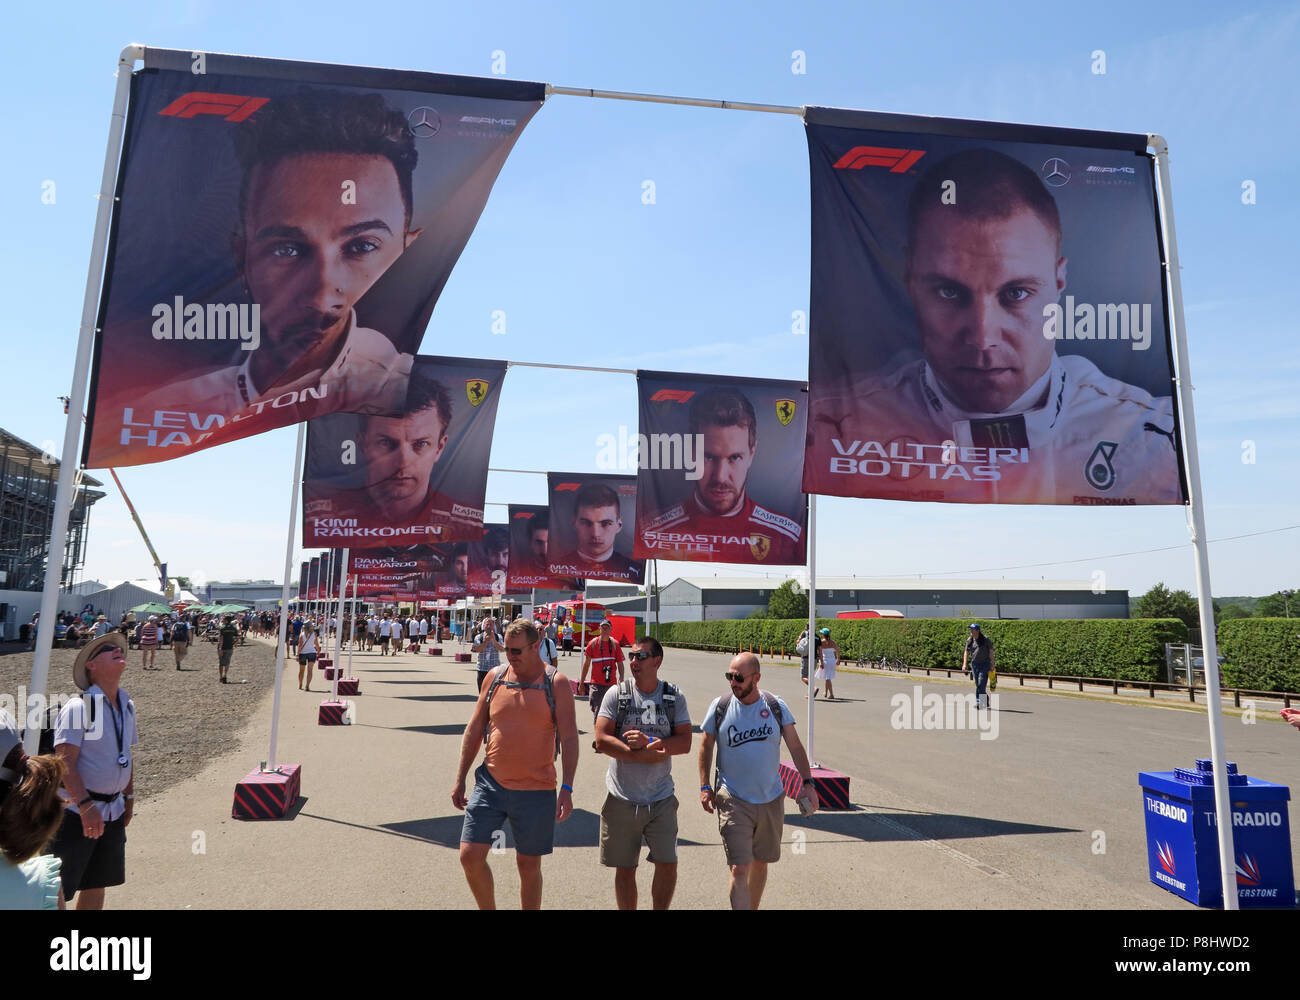 F1 driver images on flags, Silverstone circuit, Northampton, British Grand Prix 2018, England, UK Stock Photo